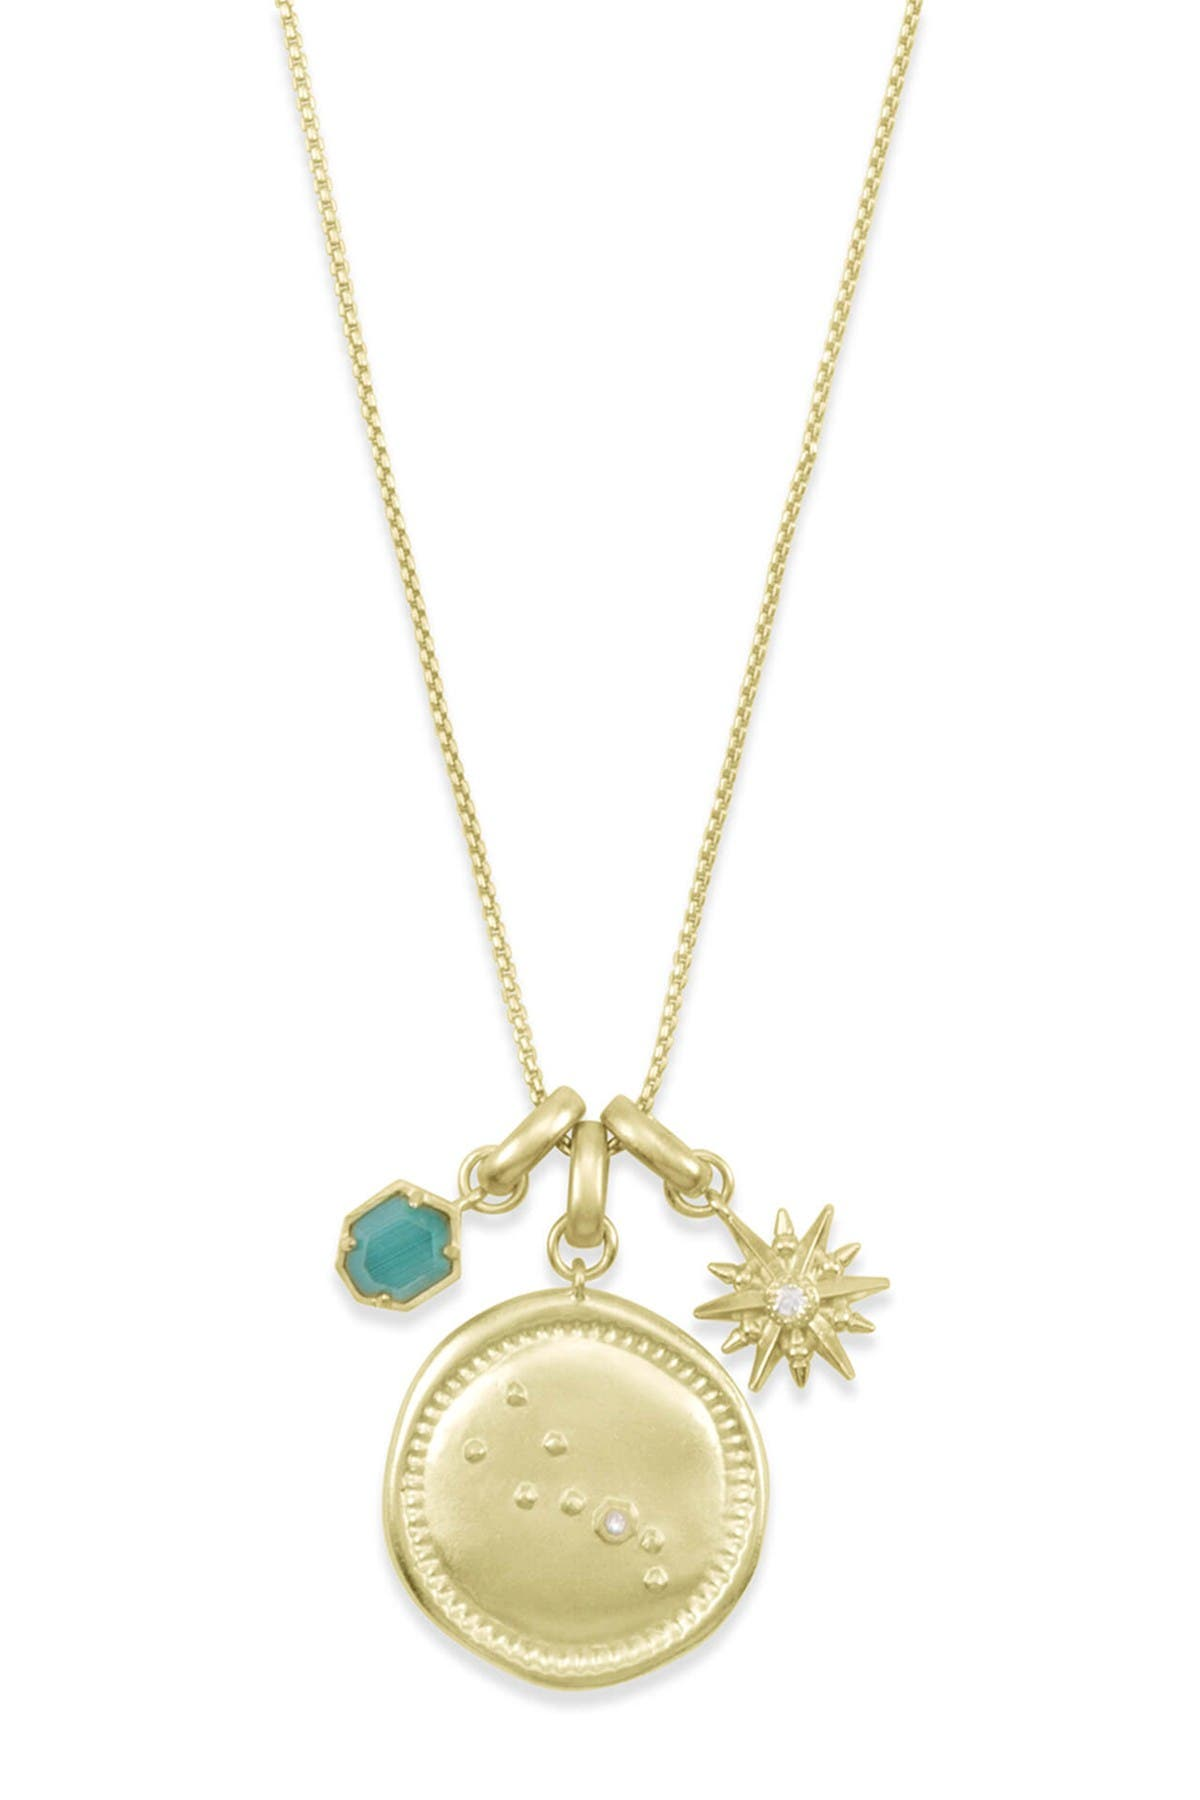 Image of Kendra Scott 14K Gold Plated Taurus Charm Necklace